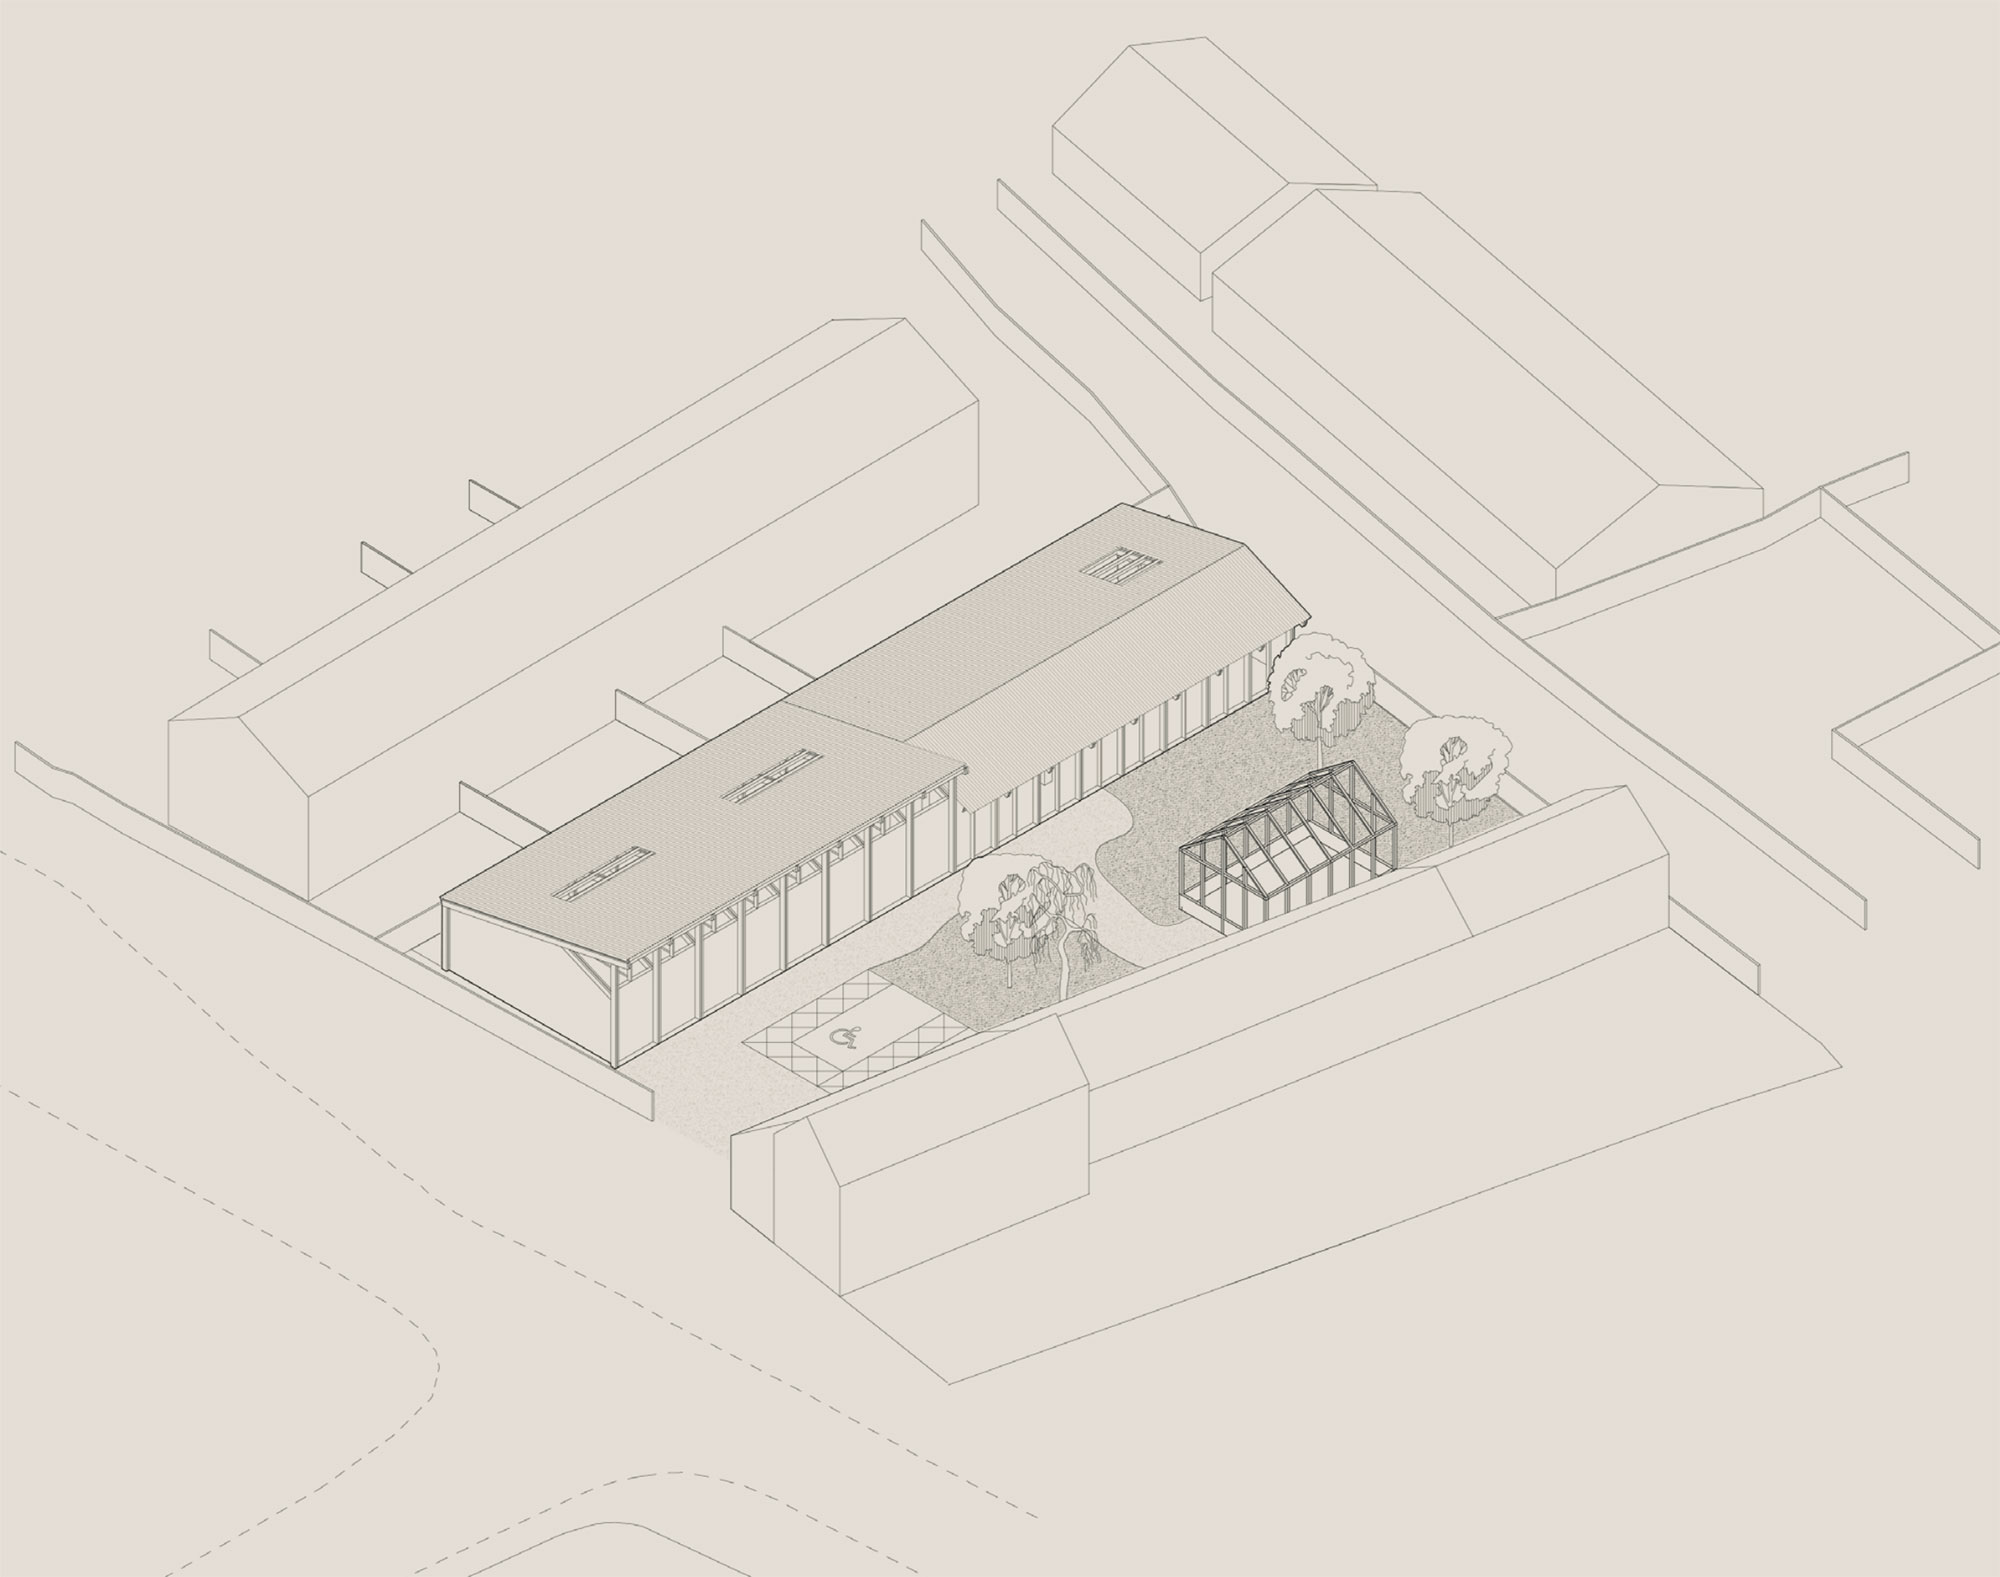 Isometric showing how the building relates to its context.